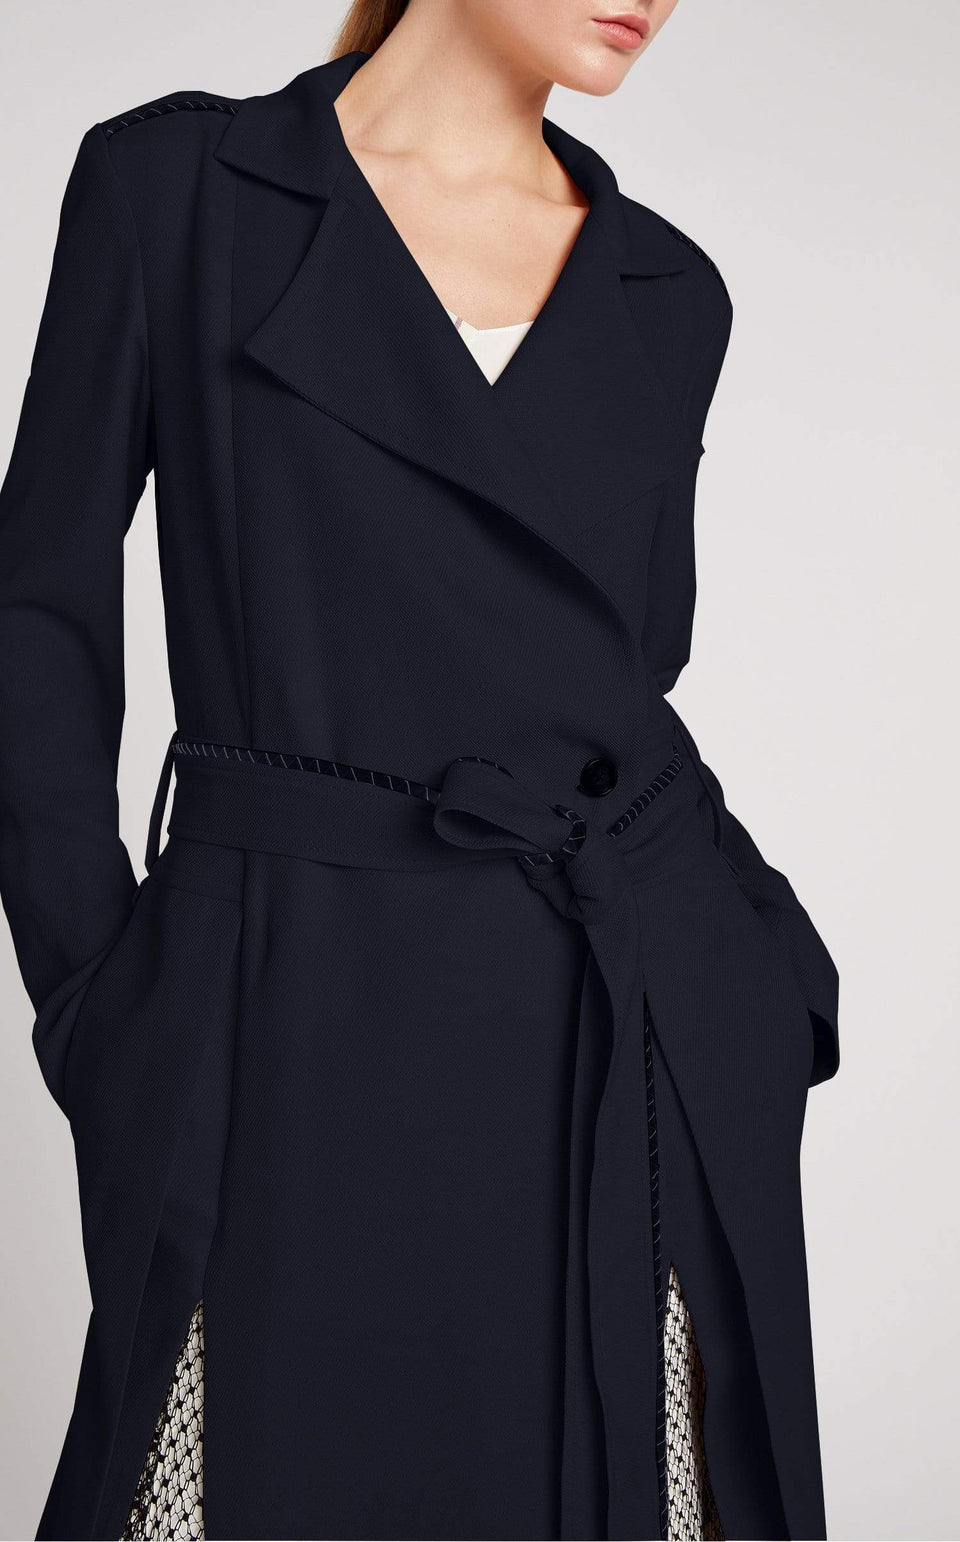 Drummond Coat In Navy/Black from Roland Mouret